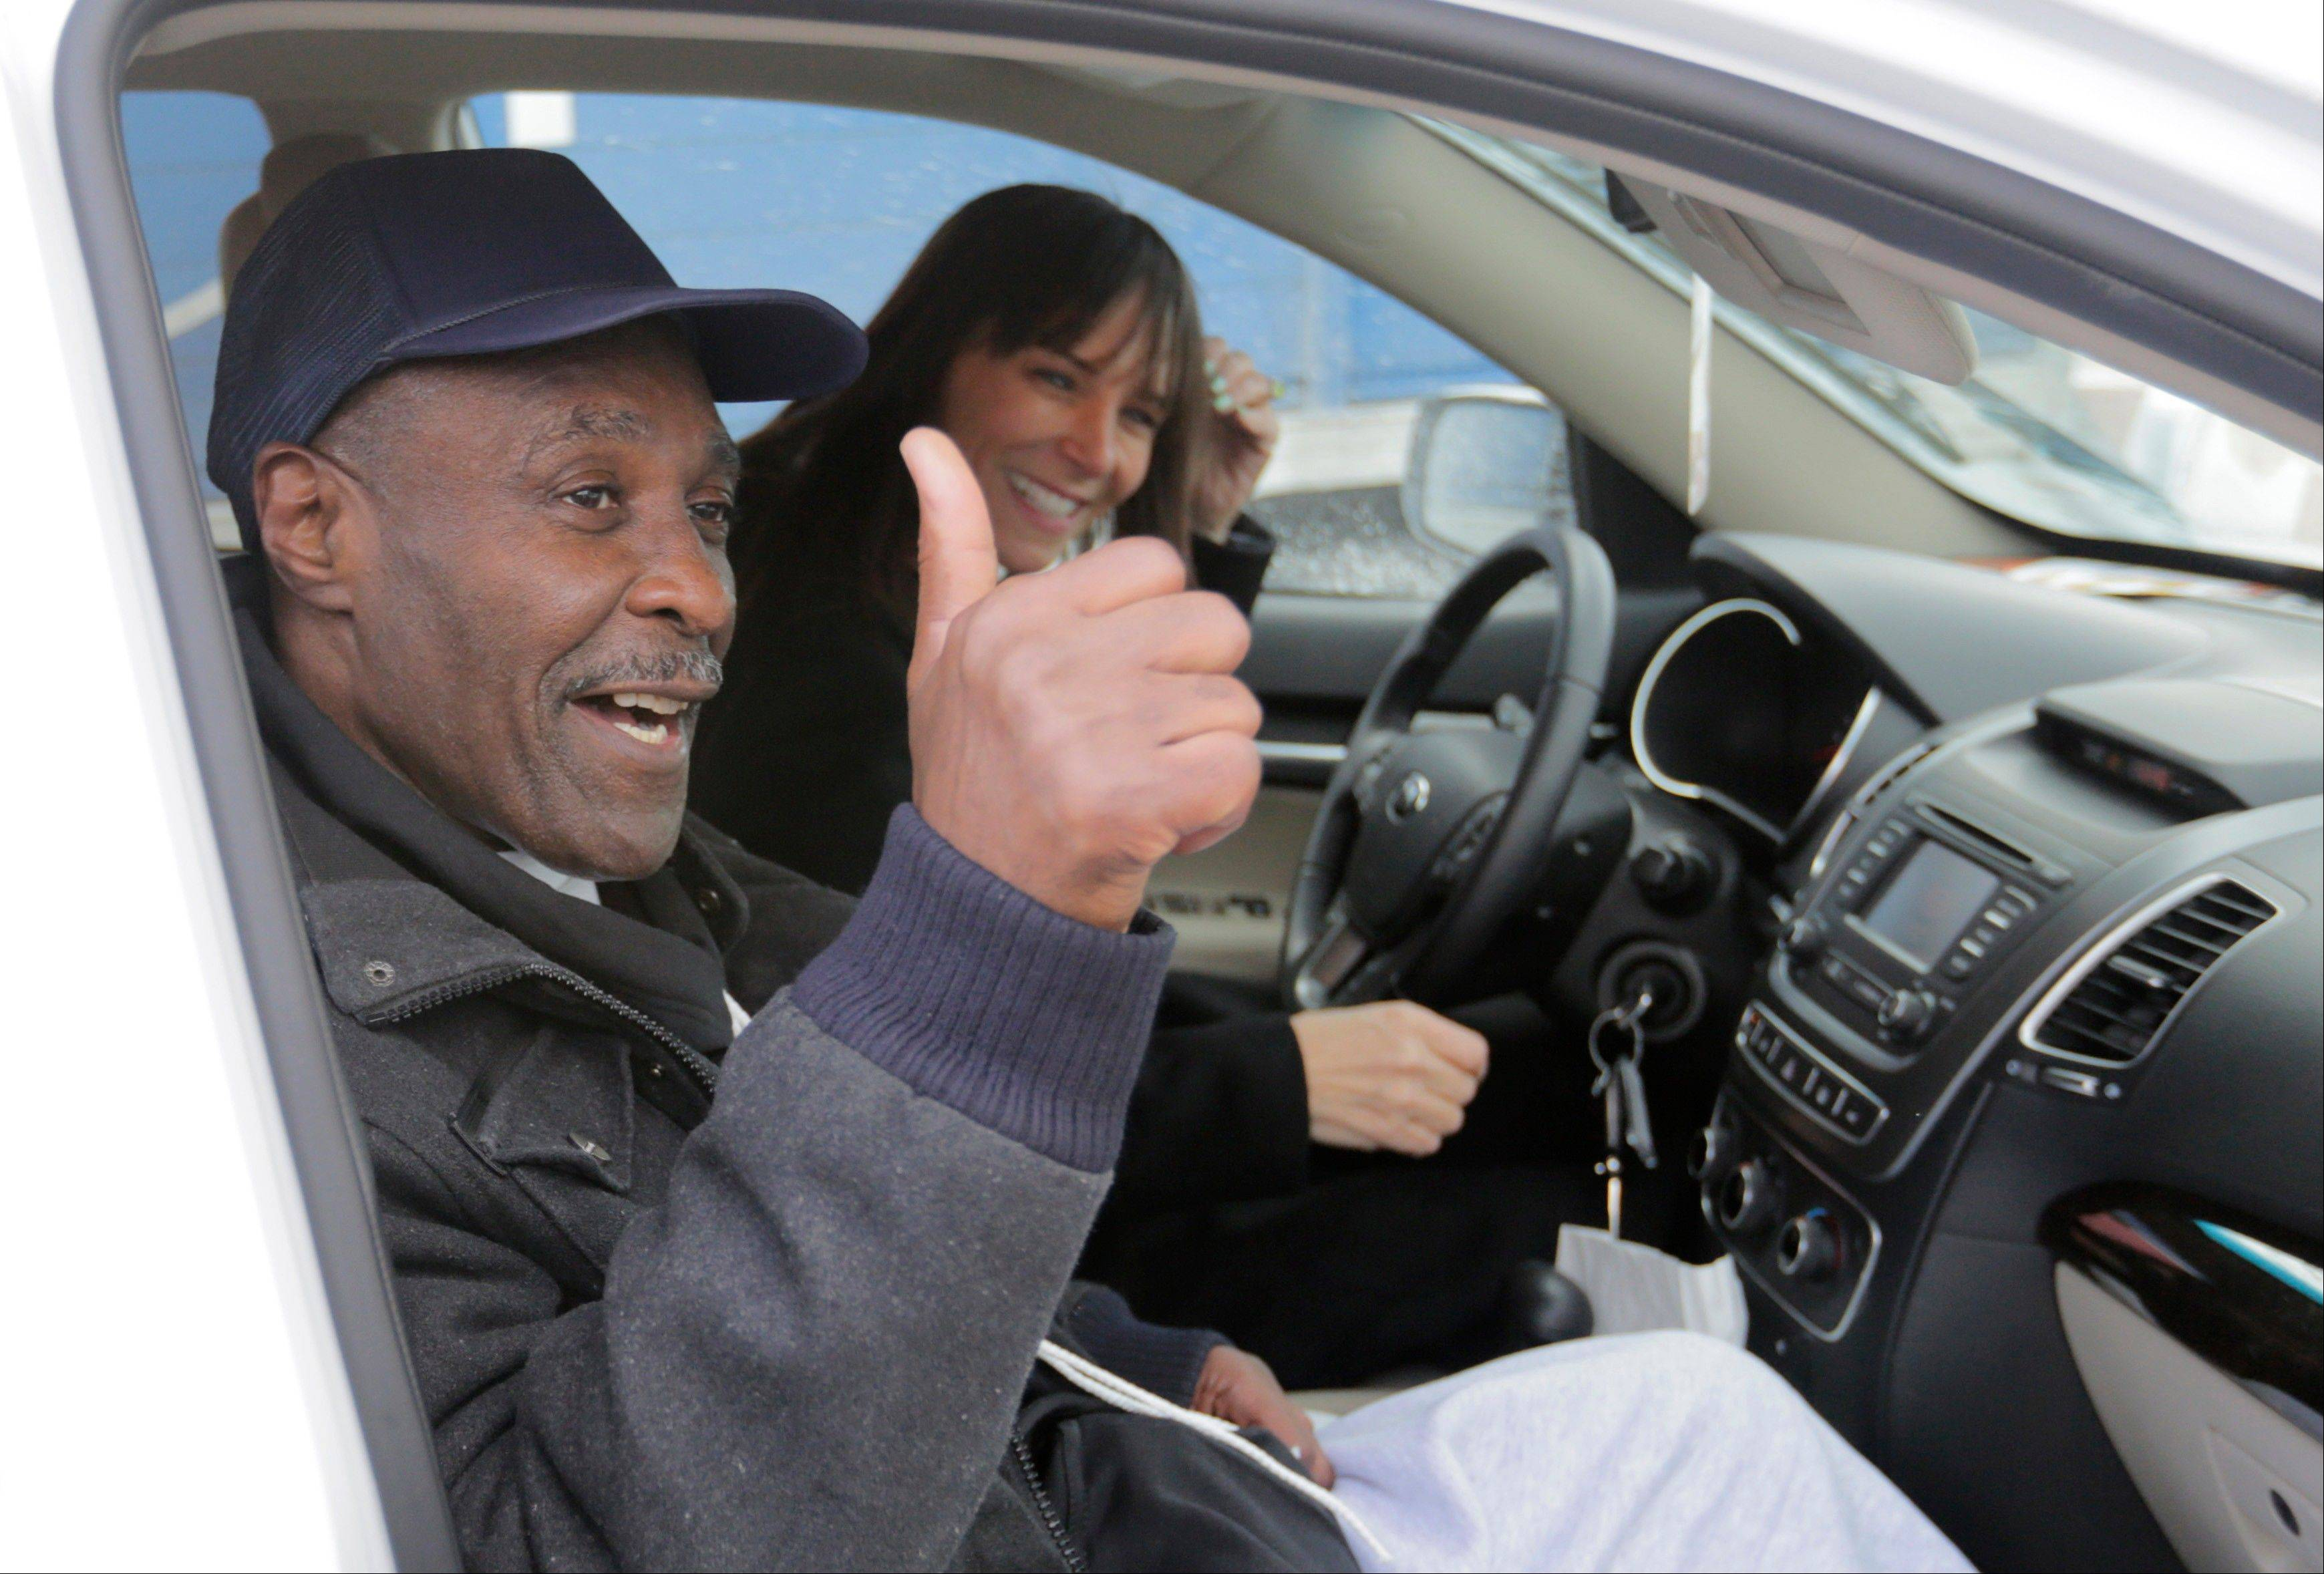 Stanley Wrice, left, convicted of rape and sentenced to 100 years in prison in 1982 gives a thumbs-up sign as he and his attorney Jennifer Bonjean, leave Pontiac Correctional Center Wednesday, Dec. 11, 2013 in Pontiac, Ill. Wrice was released after serving more than 30 years in prison when a Cook County Judge overturned his conviction the day before and granted him a new trial. Wrice has claimed for decades he was beaten and coerced into confessing to the rape by Chicago police Area 2 detectives working for disgraced former Chicago police Lt. Jon Burge. Burge himself, is now in federal prison after being convicted of perjury related to torture allegations.�Judge Richard Walsh's ruling comes after the officers working for Lt. Burge who Wrice says beat him, invoked their right not to testify. (AP Photos/M. Spencer Green)